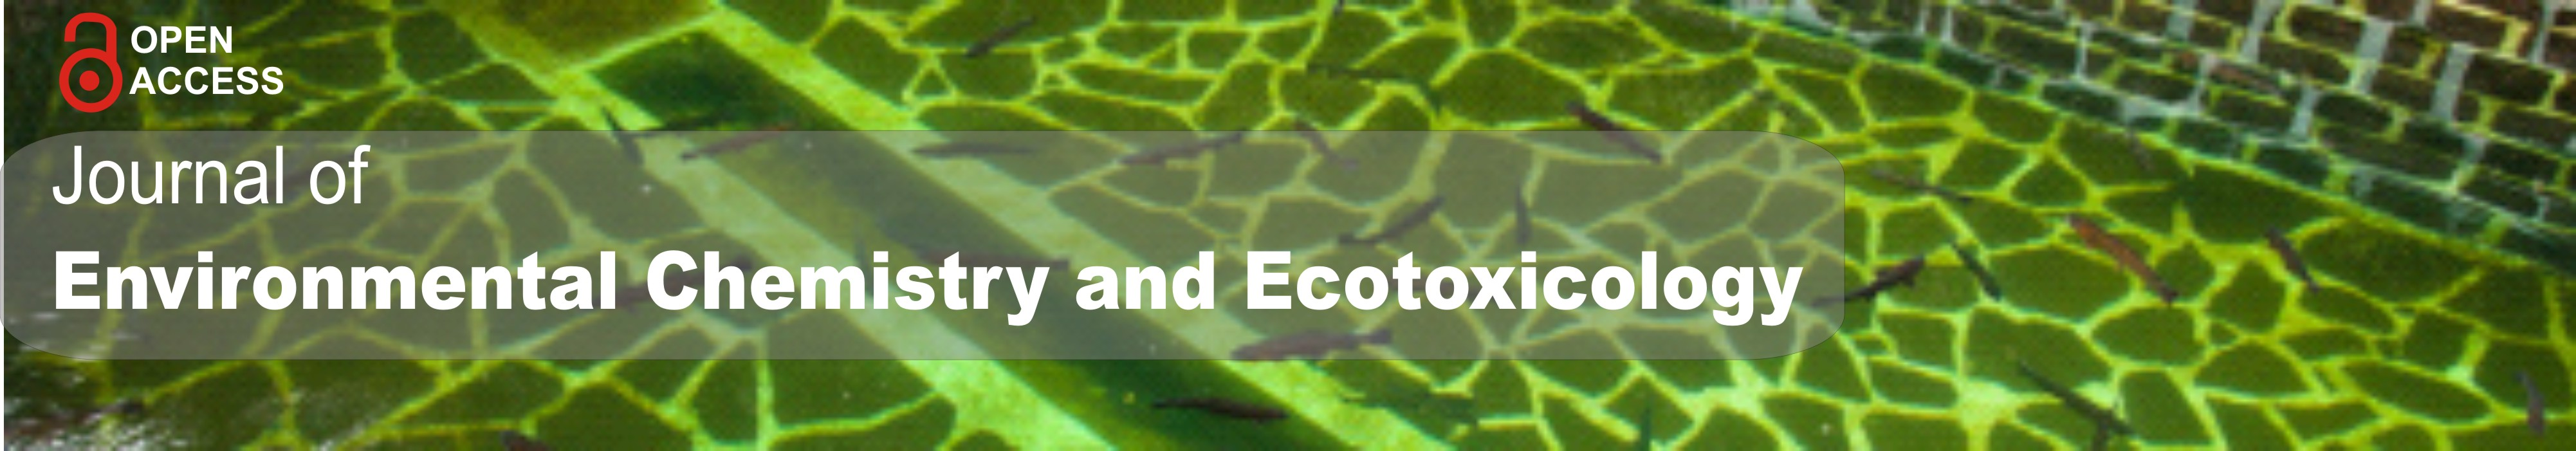 Journal of Environmental Chemistry and Ecotoxicology